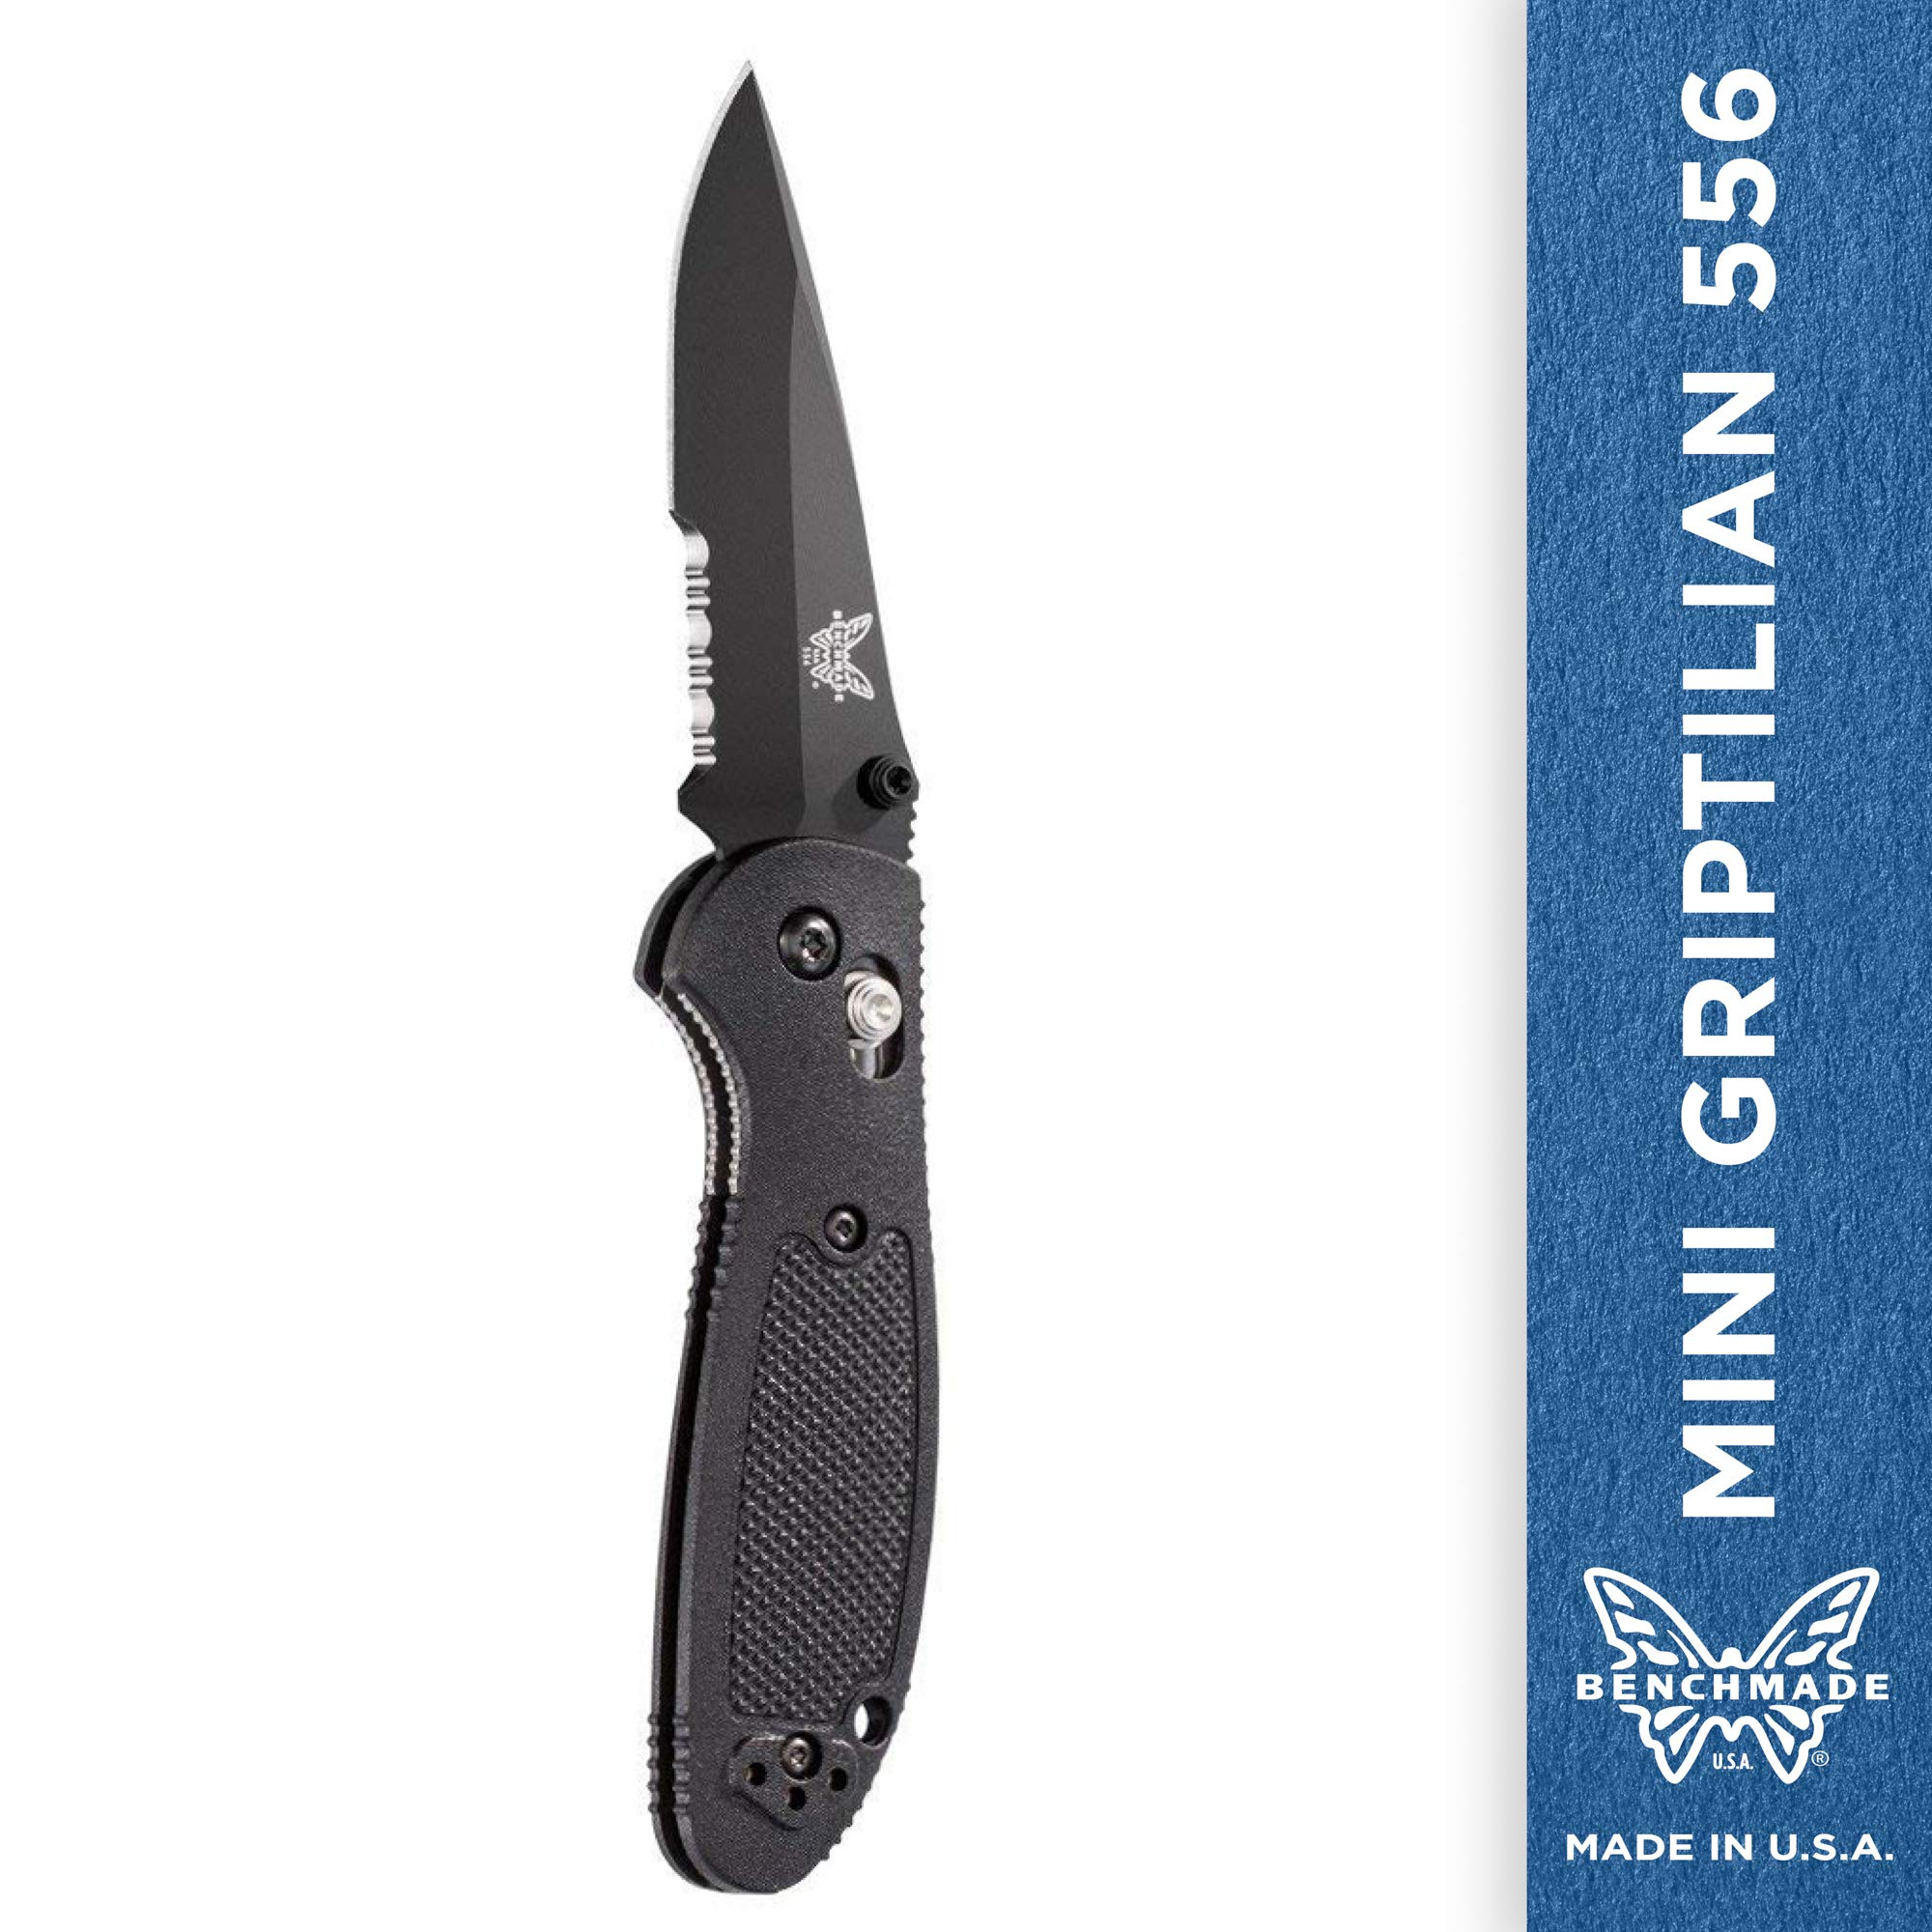 Benchmade - Mini Griptilian 556 EDC Manual Open Folding Knife Made in USA, Drop-Point Blade, Serrated Edge, Coated Finish, Black Handle by Benchmade